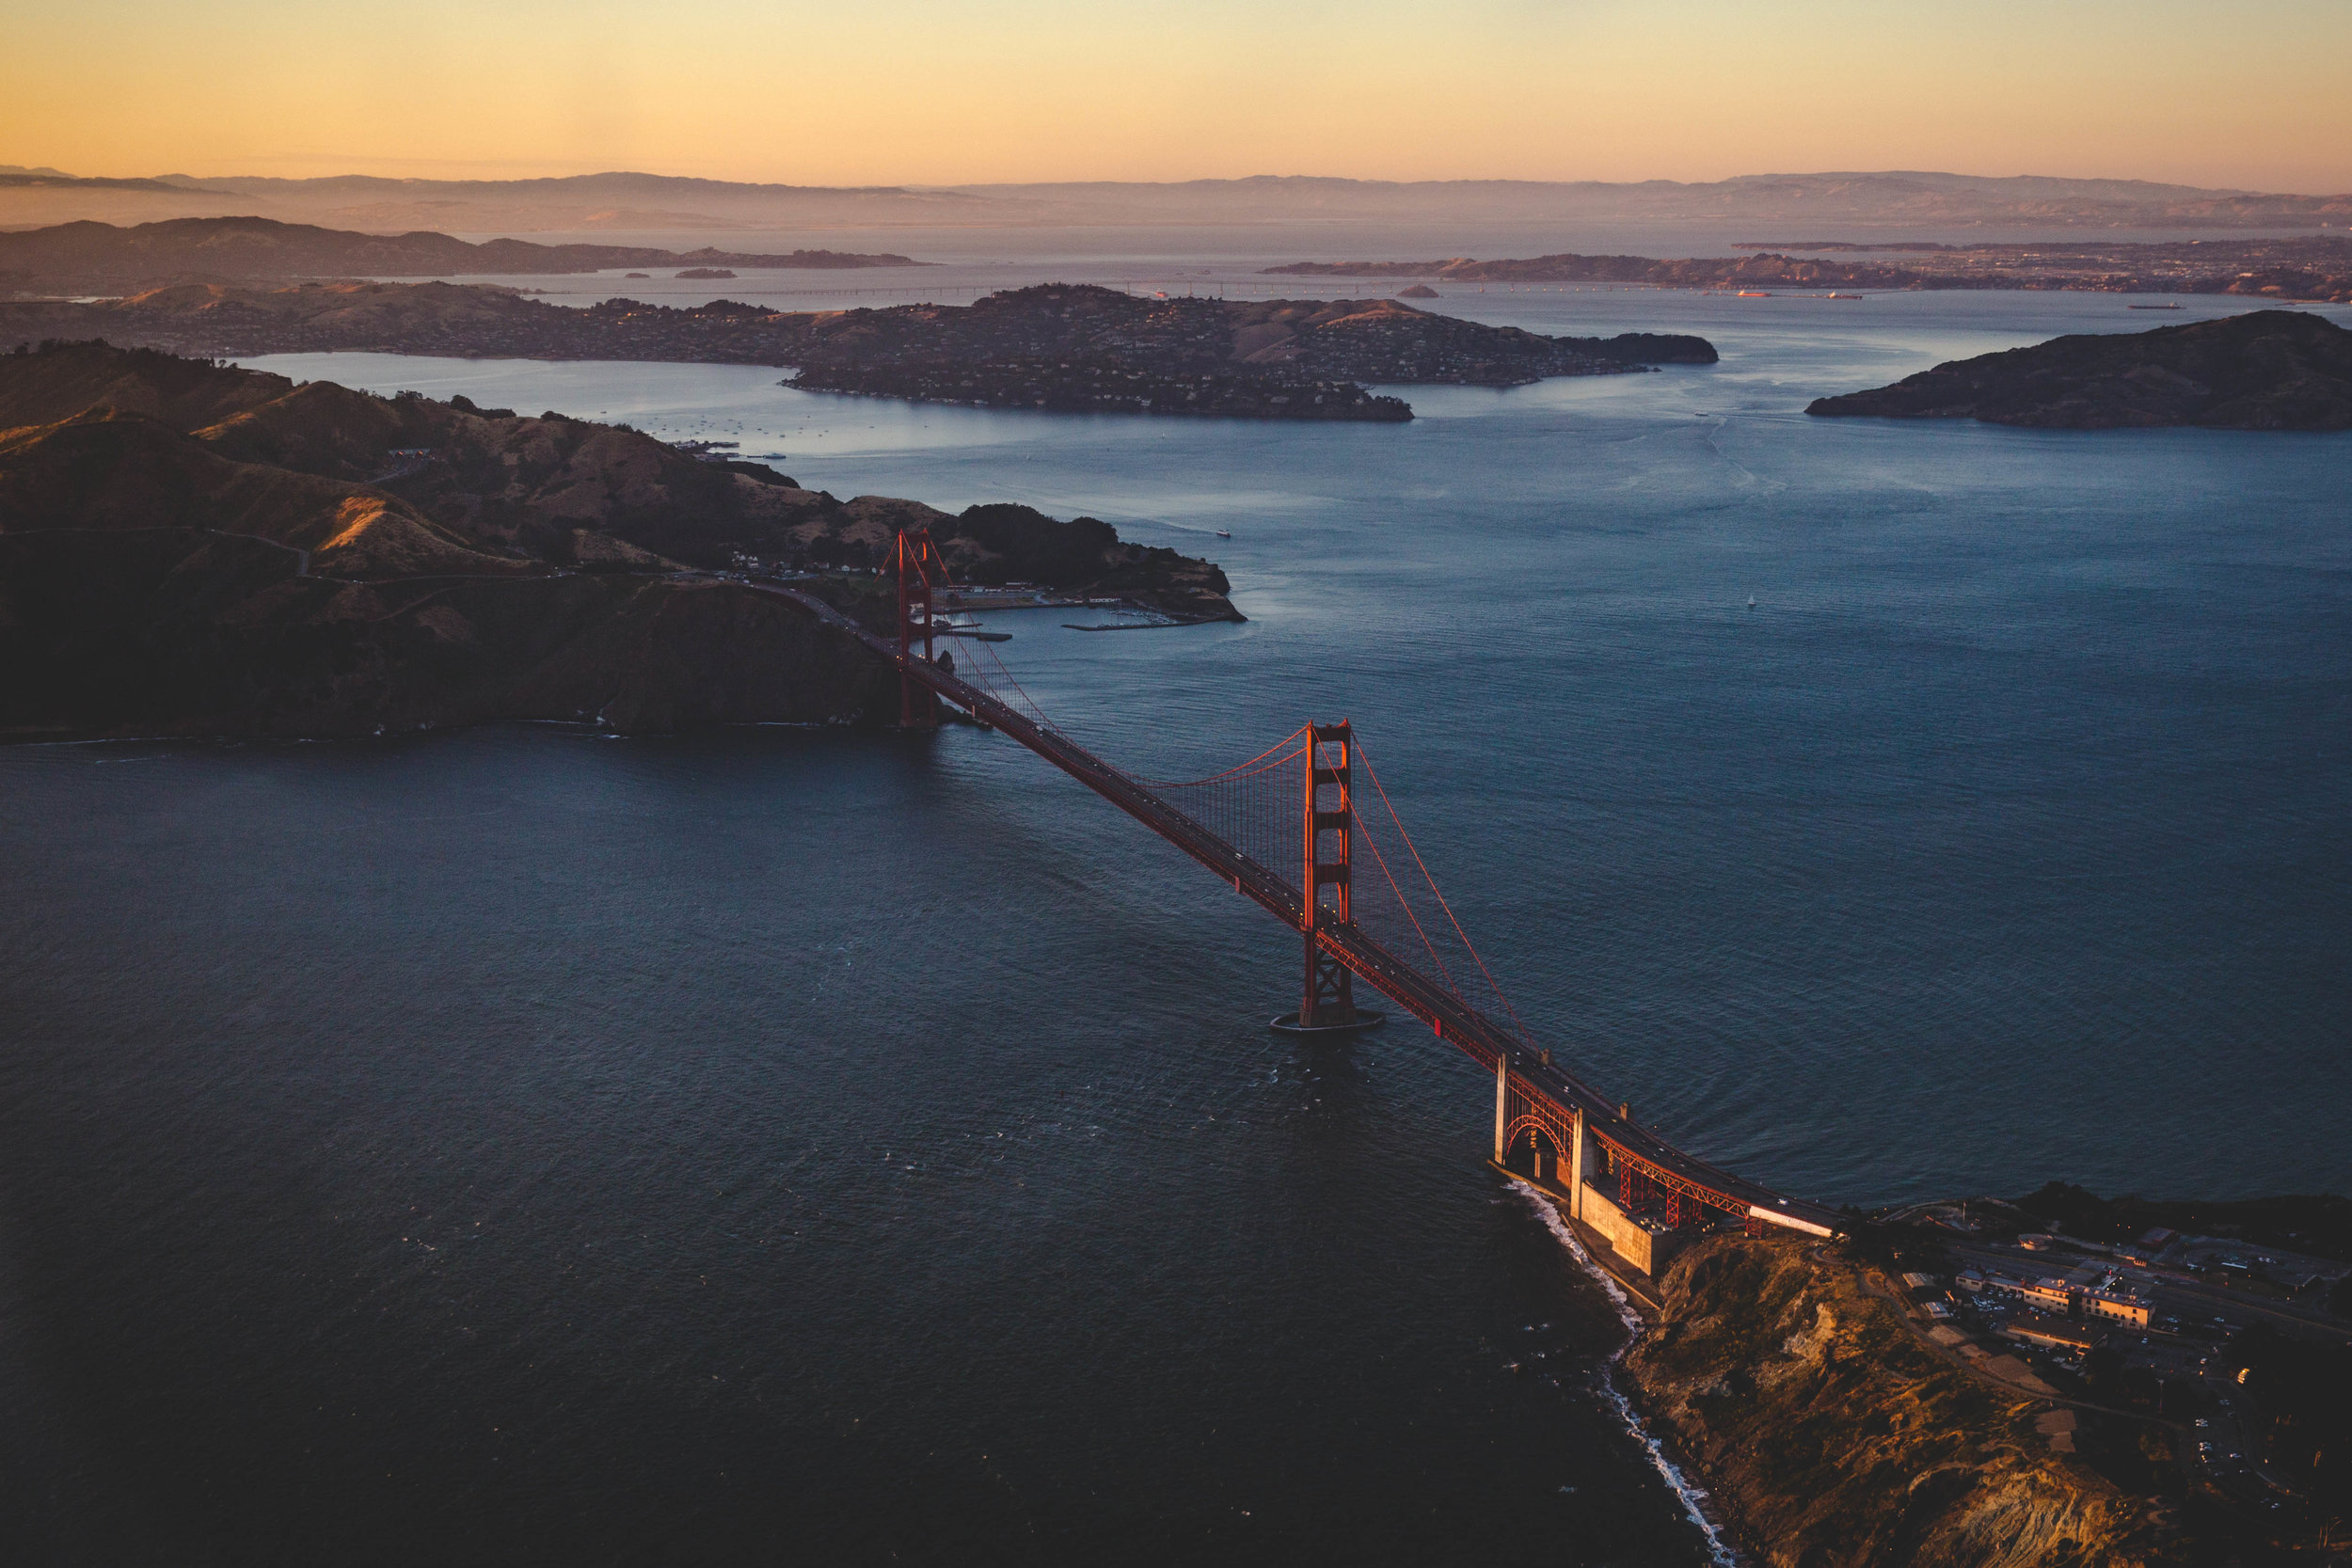 Golden Gate – San Francisco, California